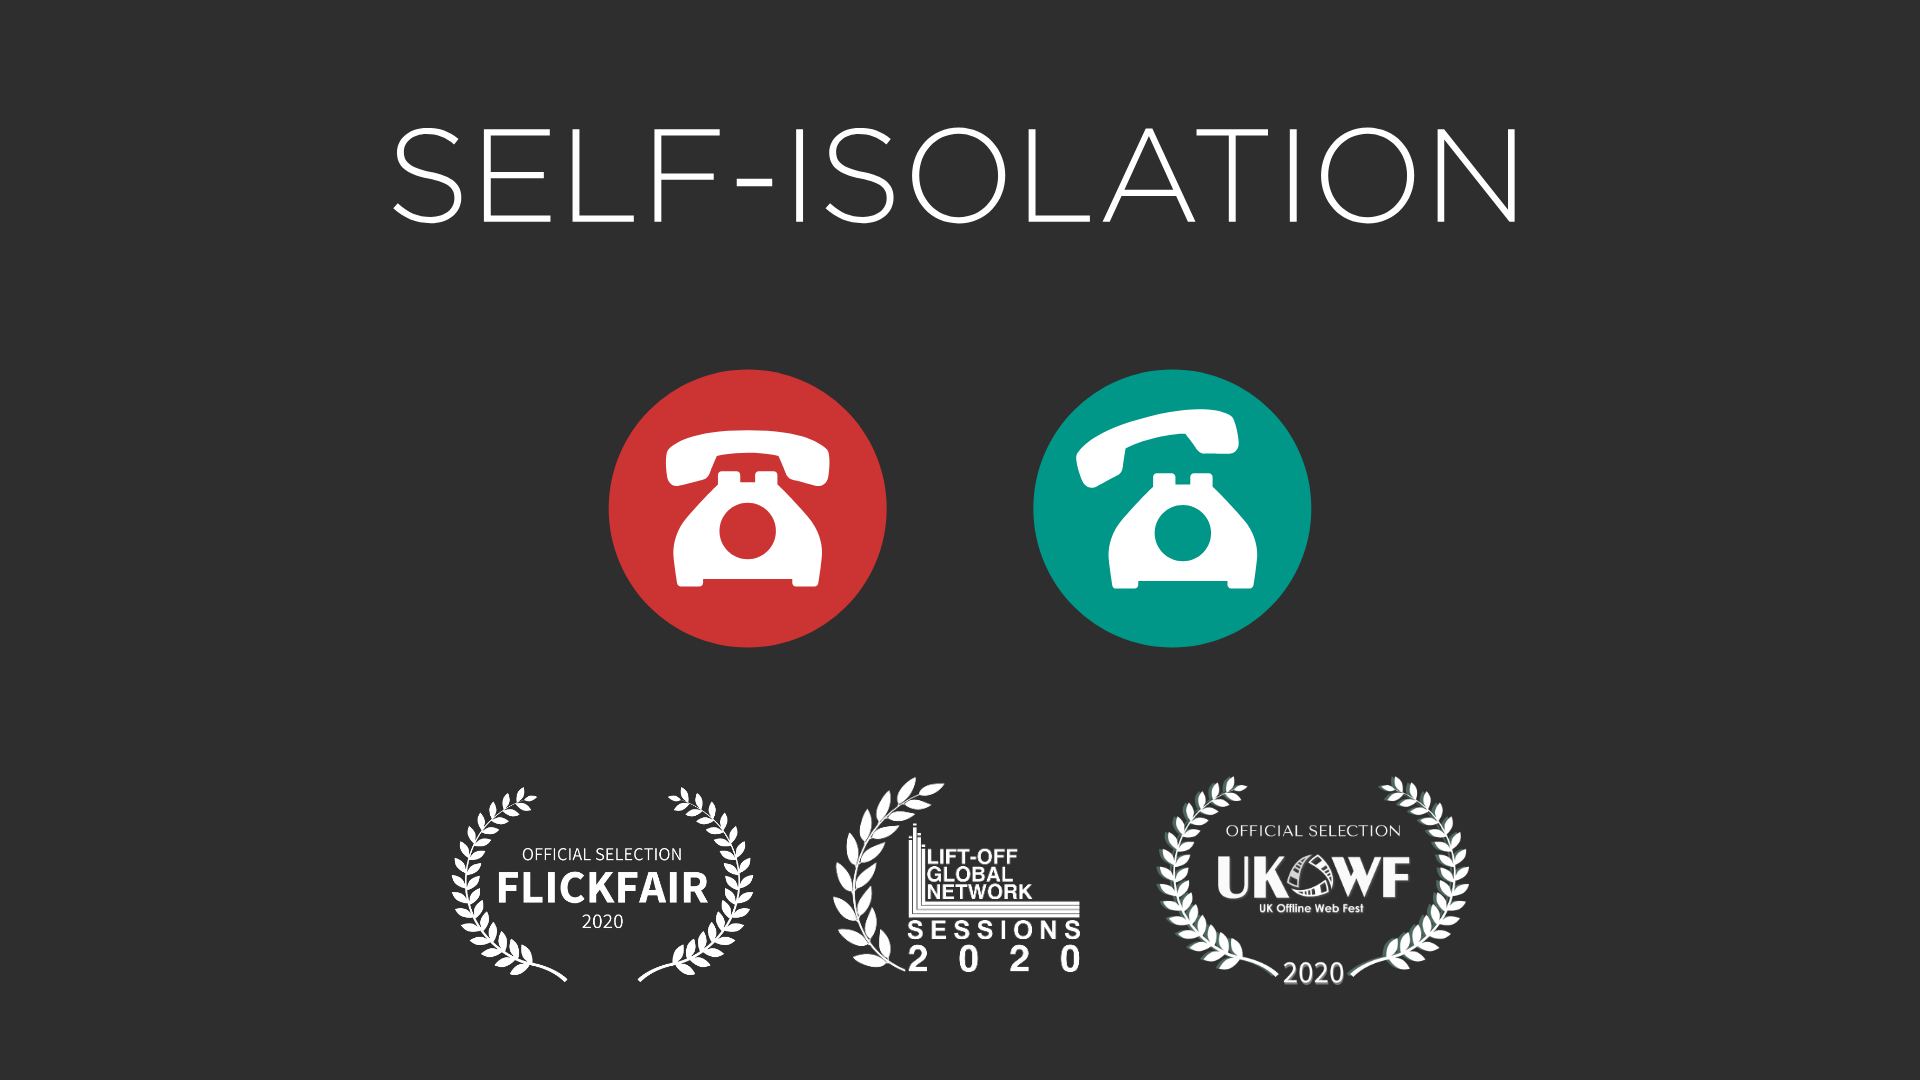 Self-Isolation